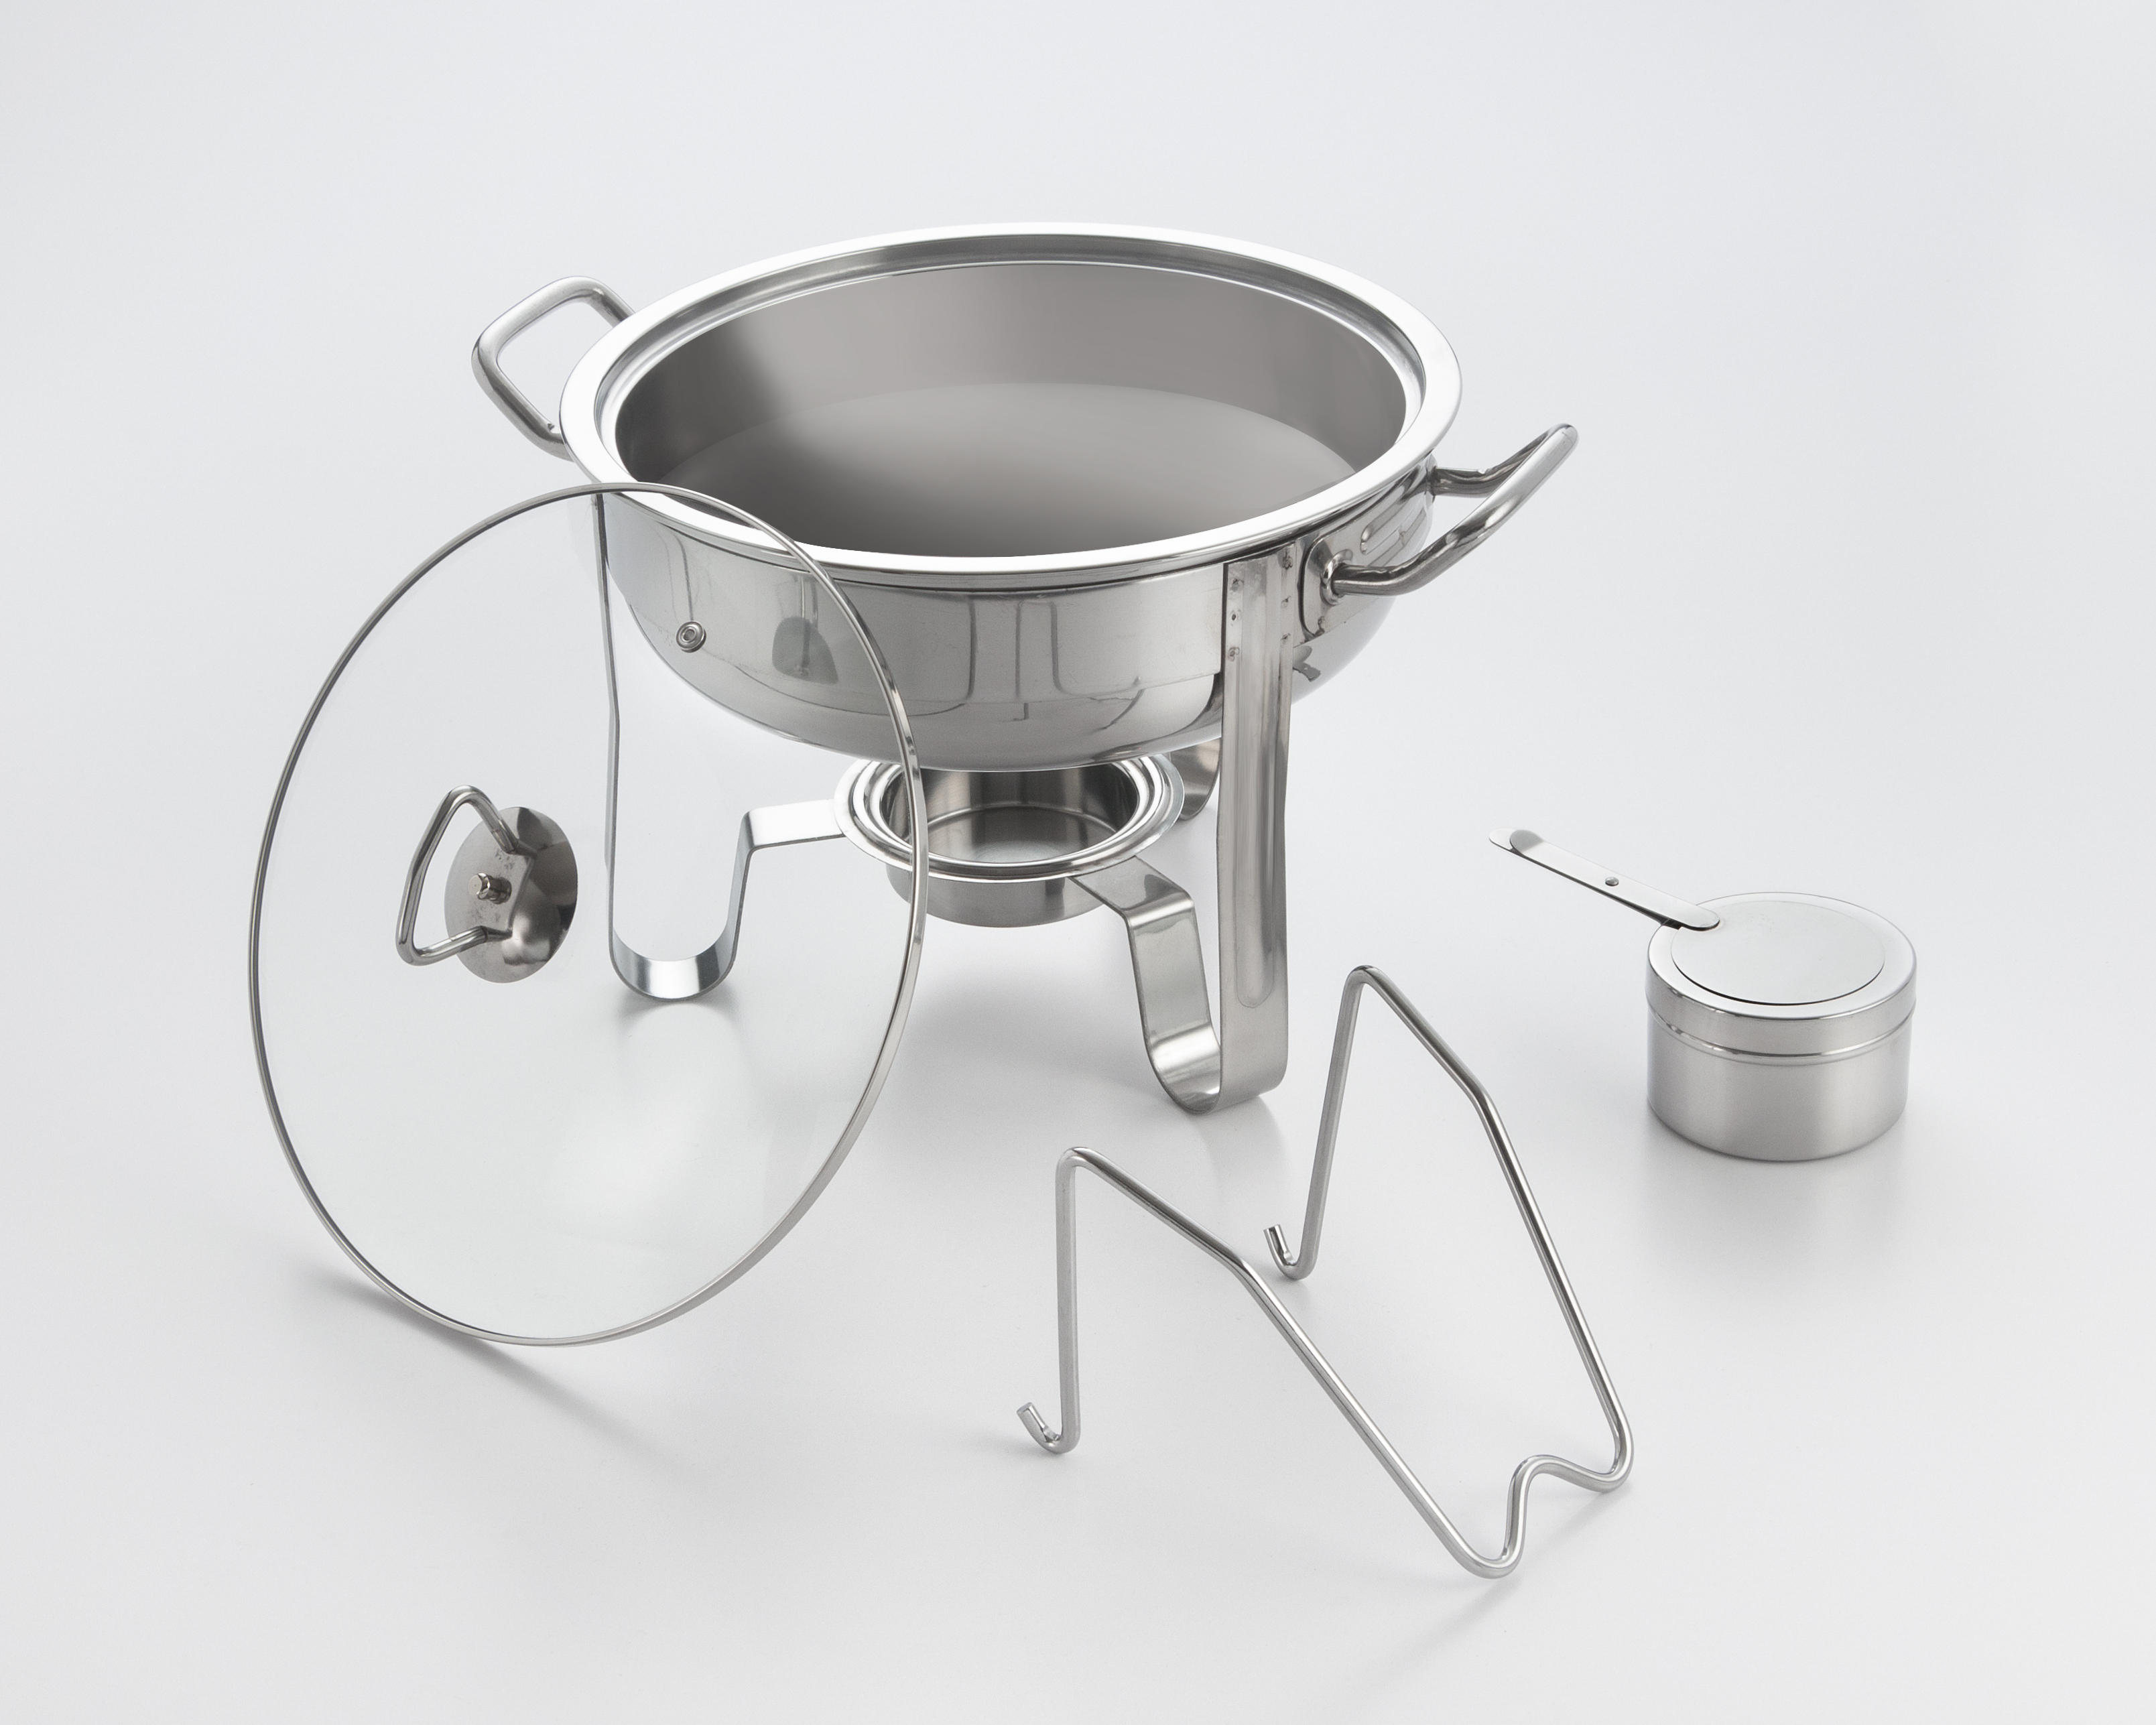 Cook Pro Stainless Steel Chafing Dish by Generic